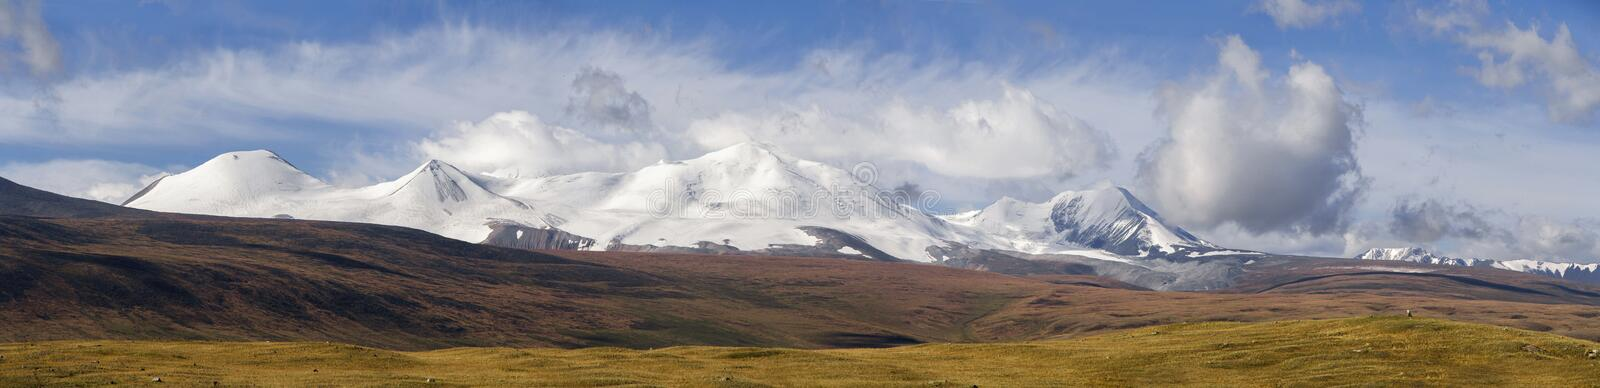 Altai, Ukok plateau. Beautiful sunset with mountains in the background. Snowy peaks autumn. Journey through Russia, Altay royalty free stock photos